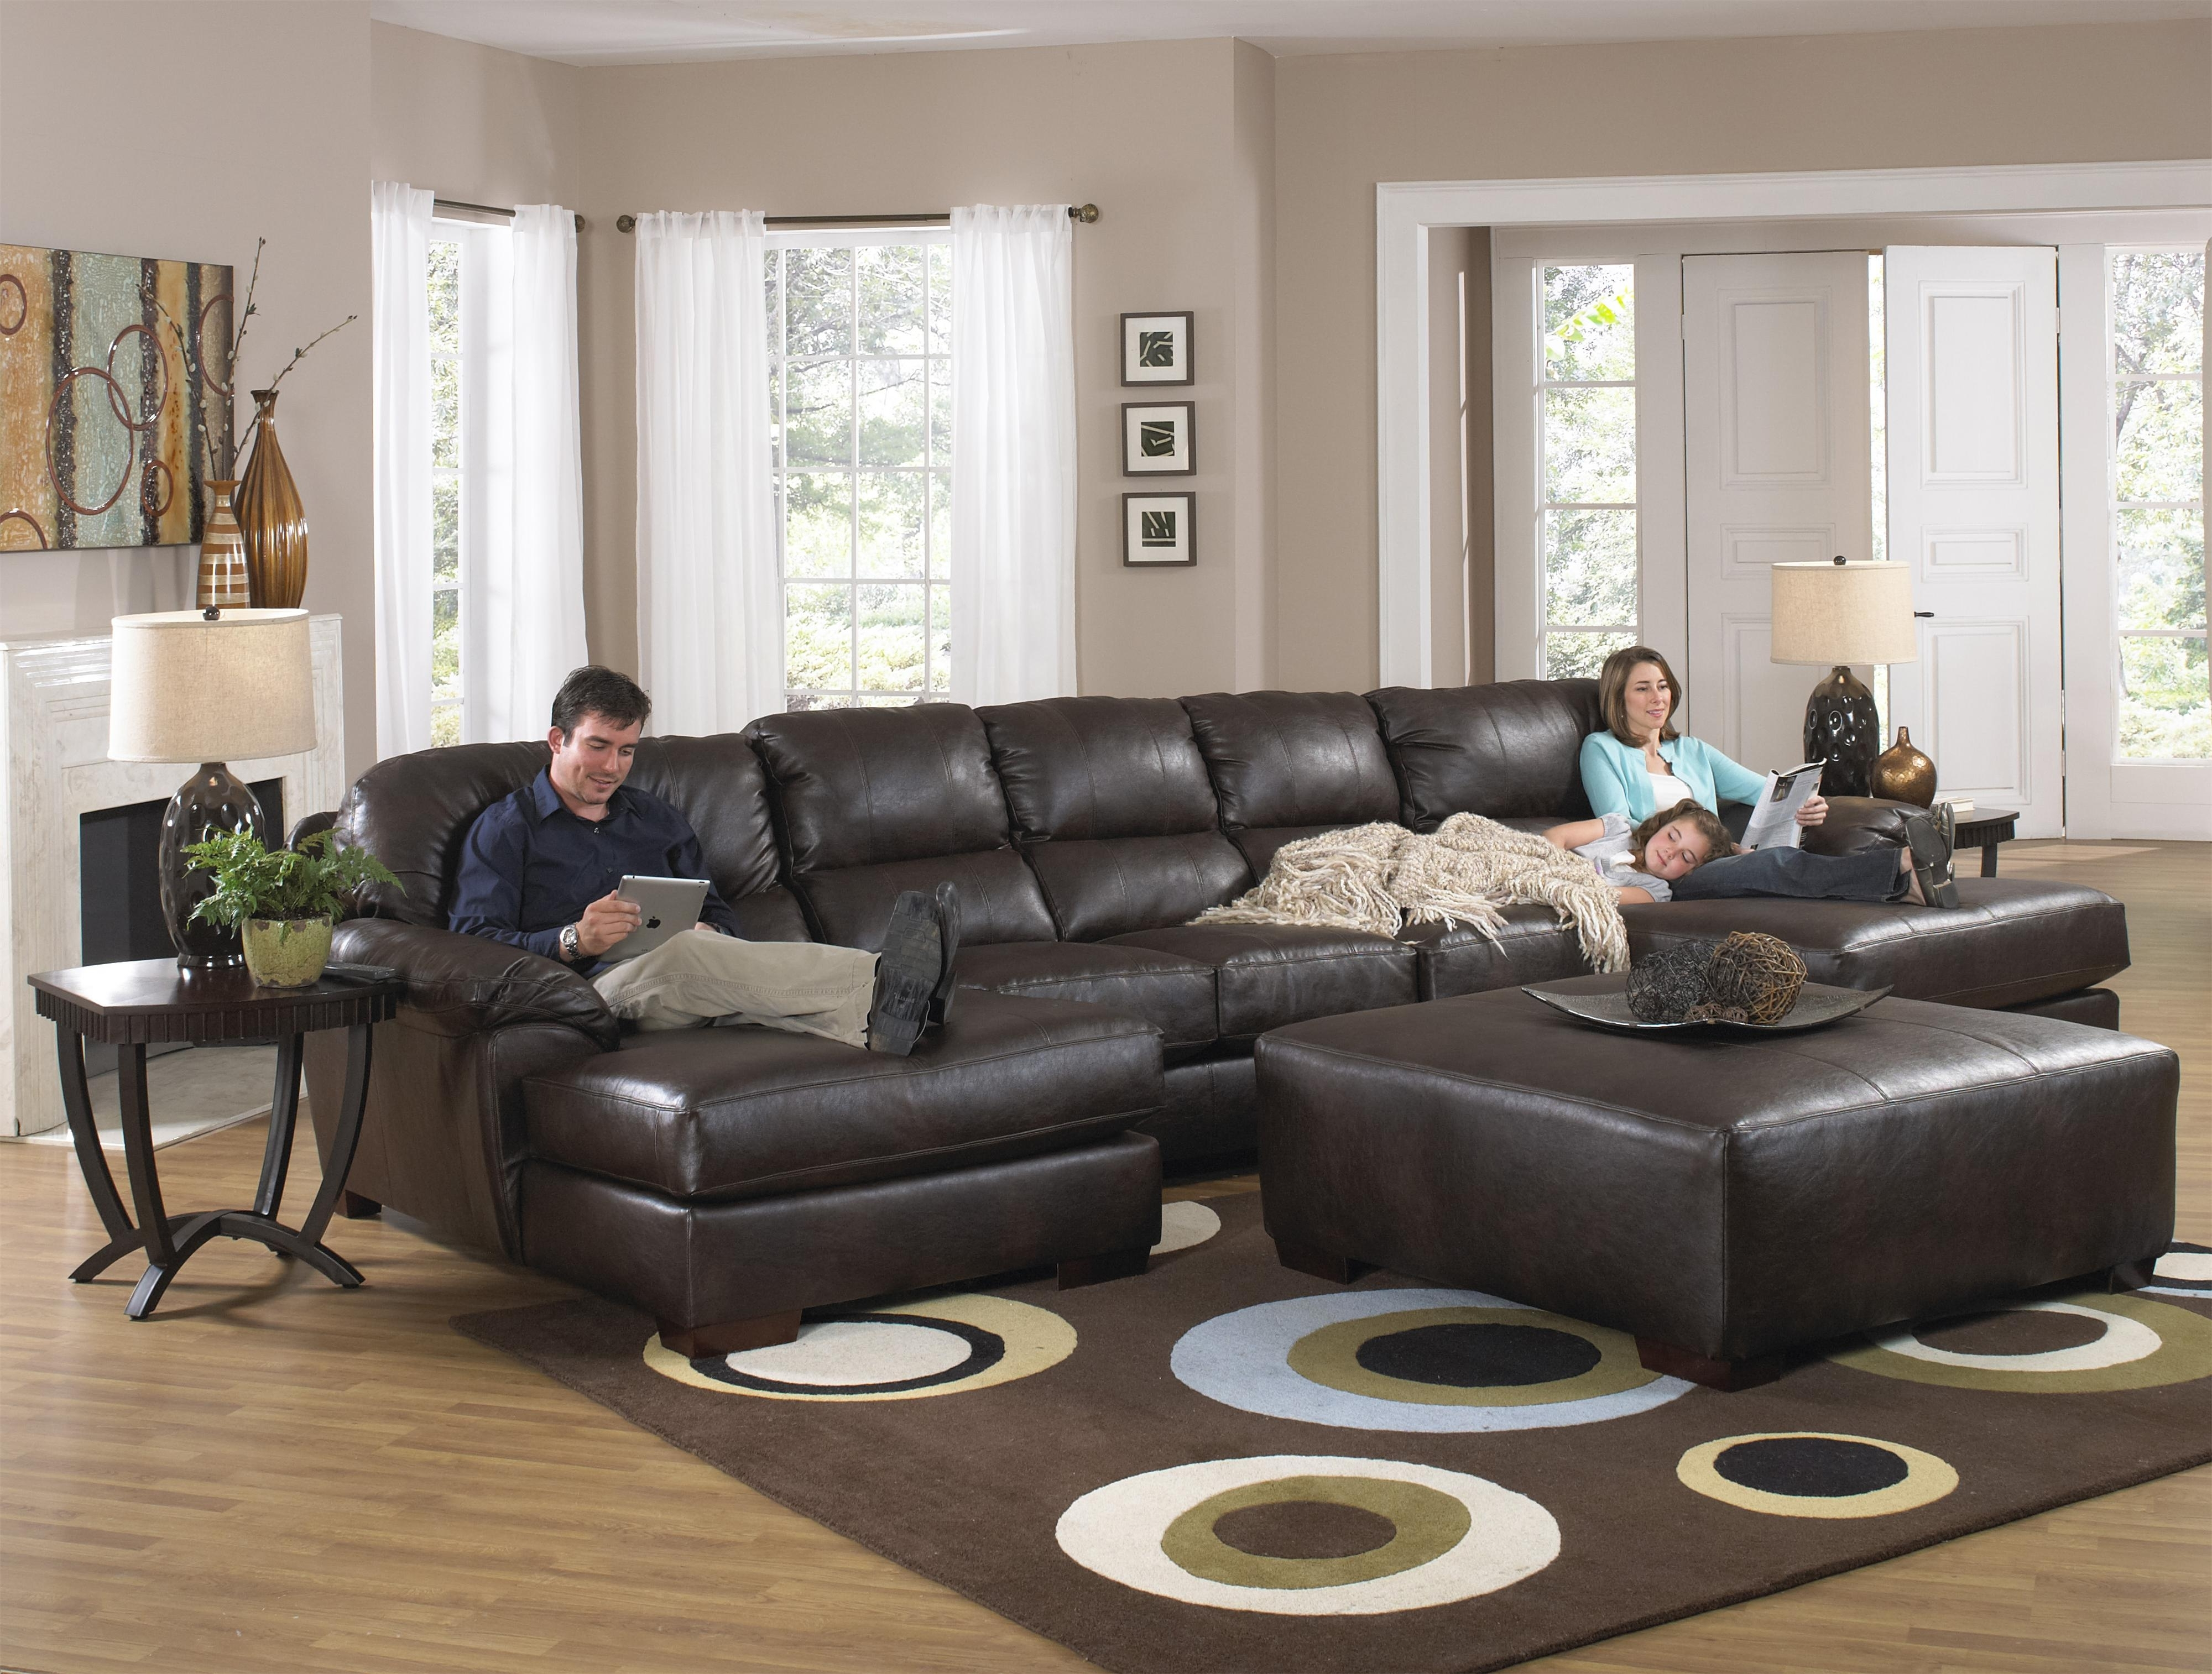 Favorite Leather Sectional Sofas With Chaise With Extra Deep Sectional Sofa Extra Large Sectional Sofas With Chaise (View 5 of 15)